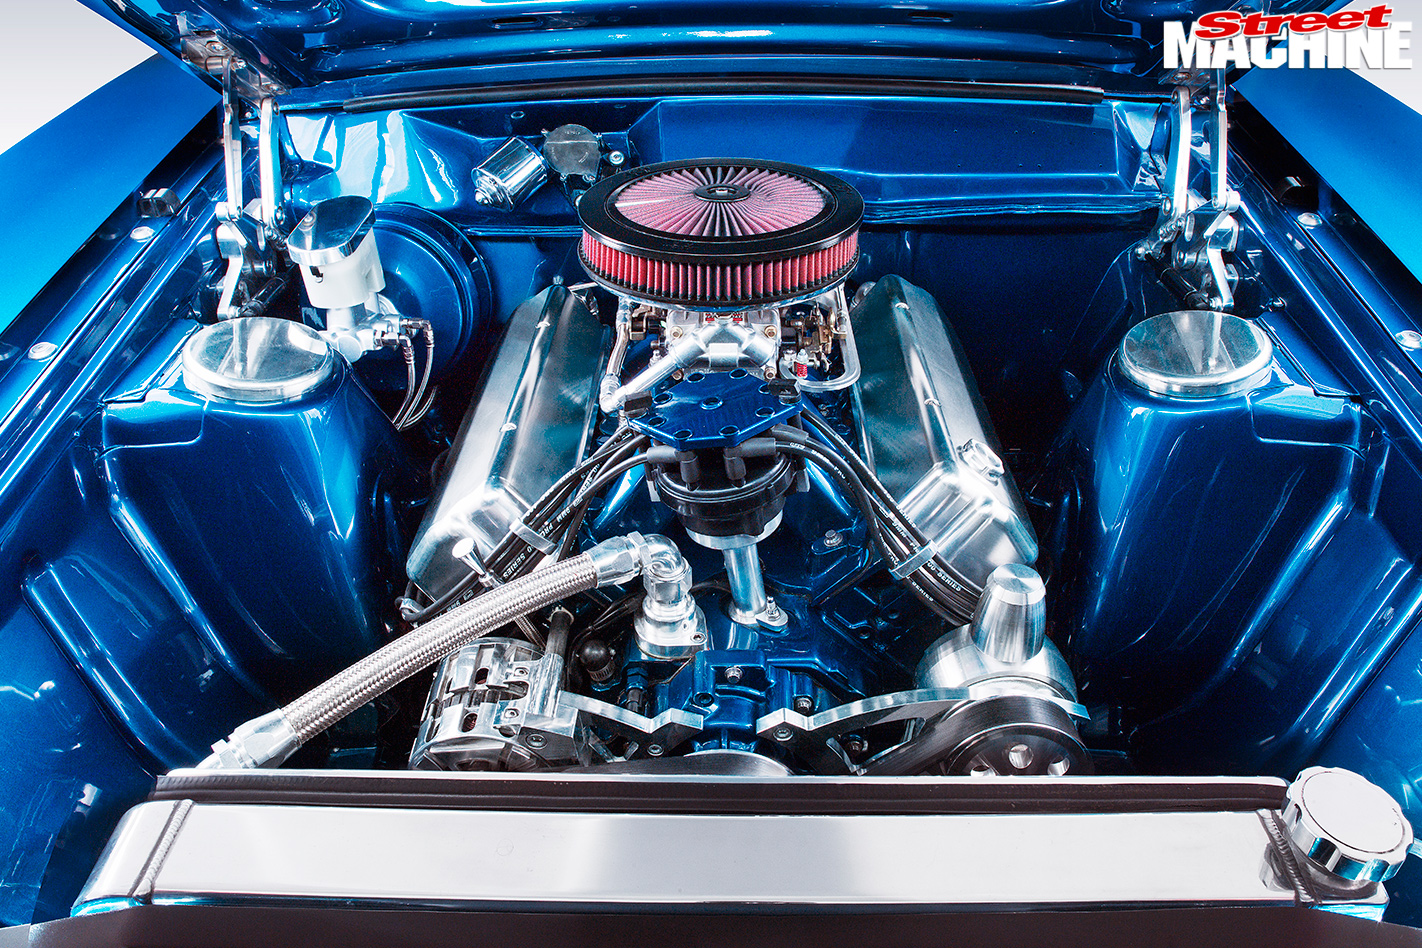 Ford -XB-Falcon -Fairmont -GS-engine -bay